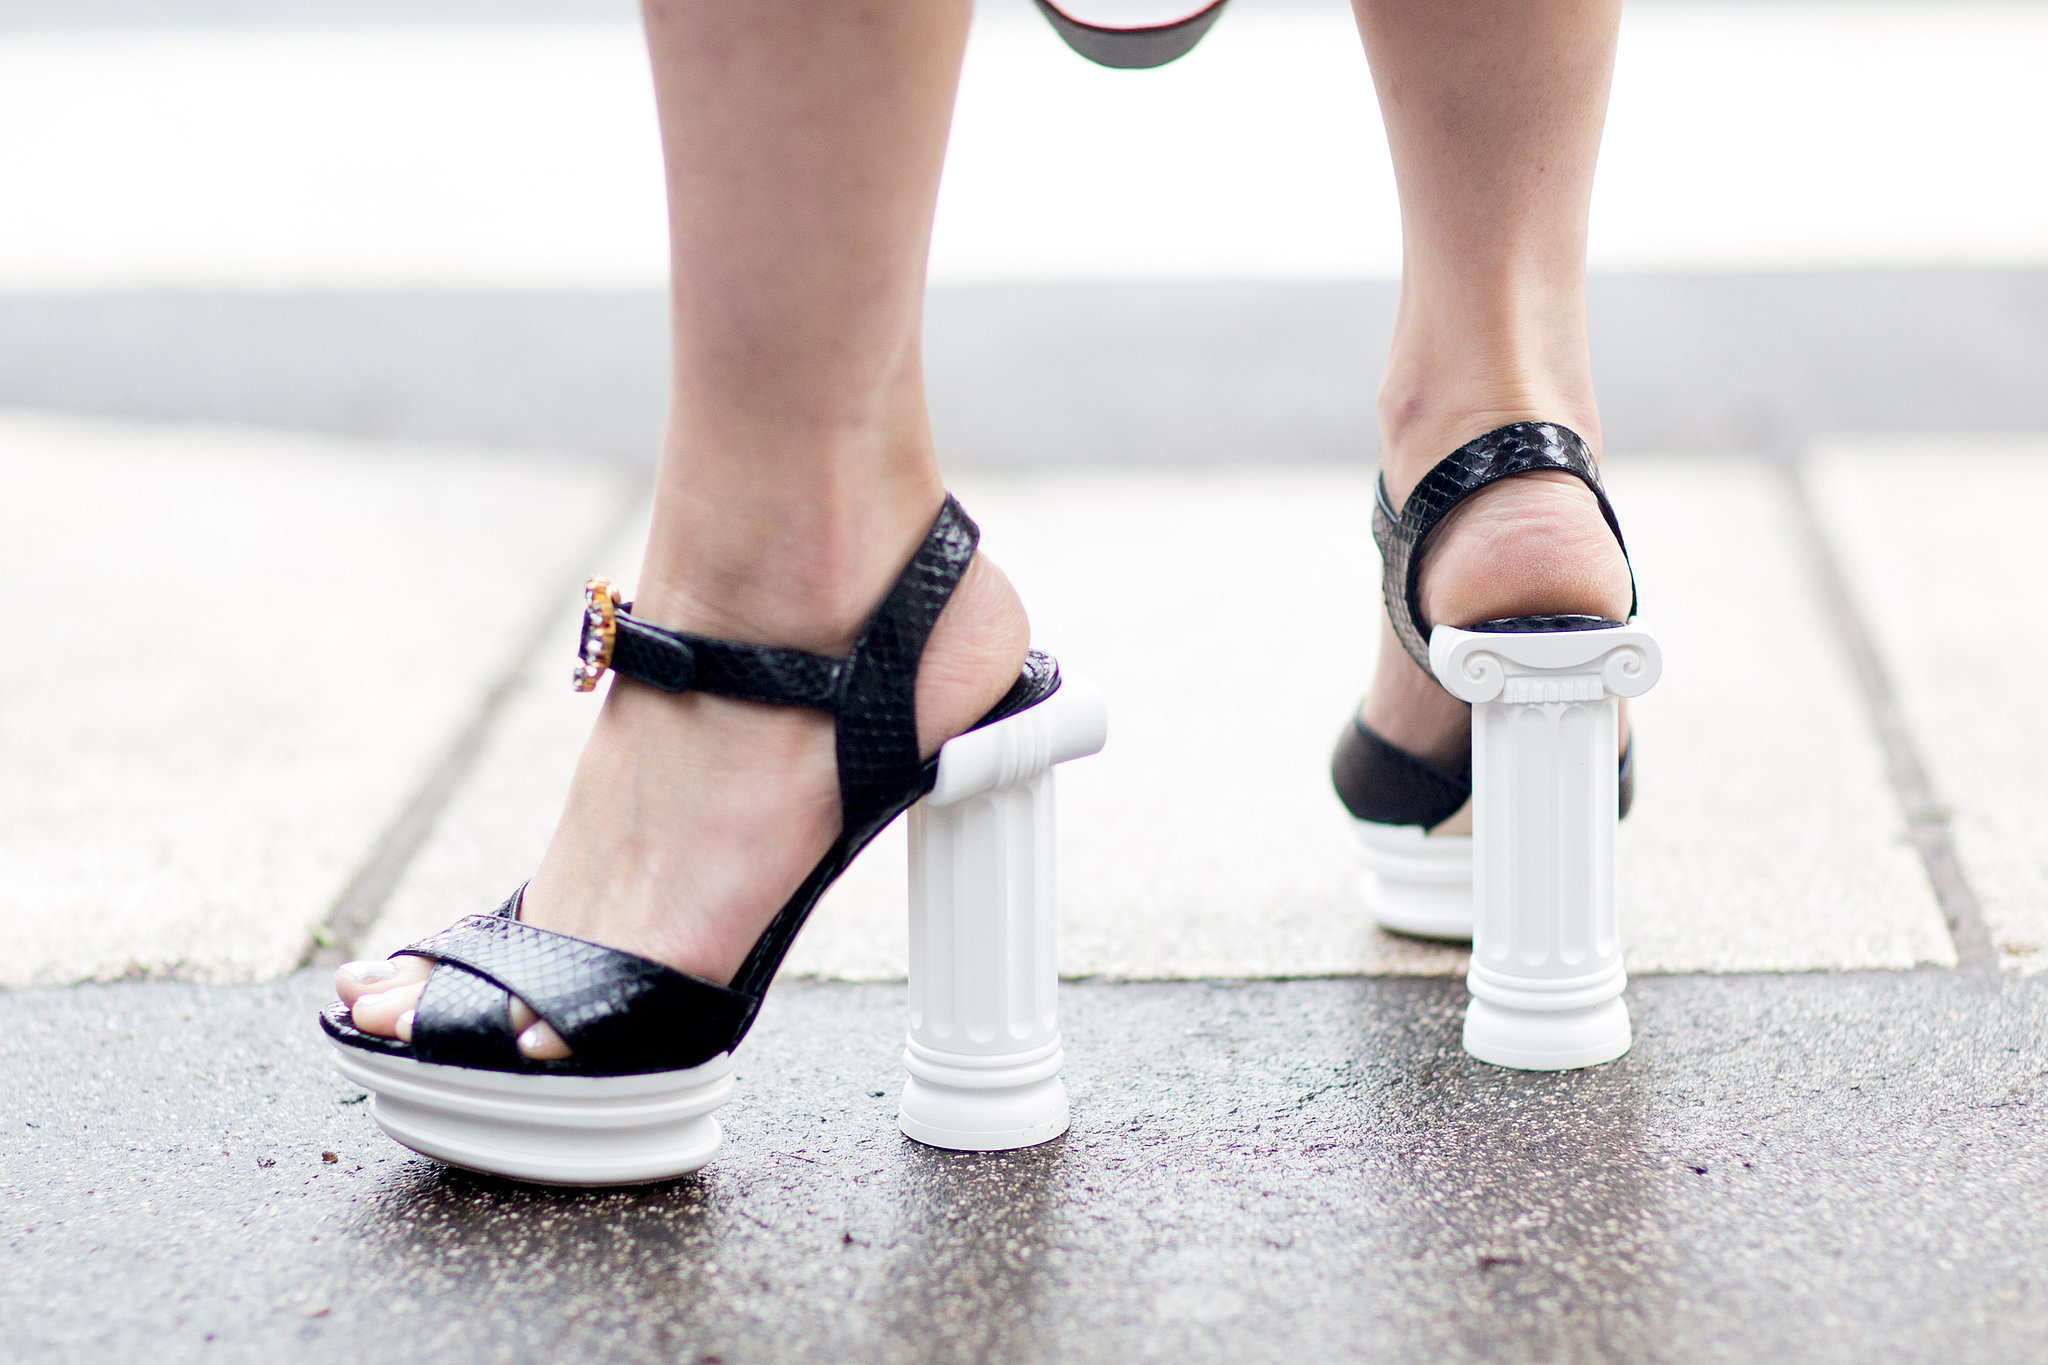 These heels lend a little lift — in more ways than one.